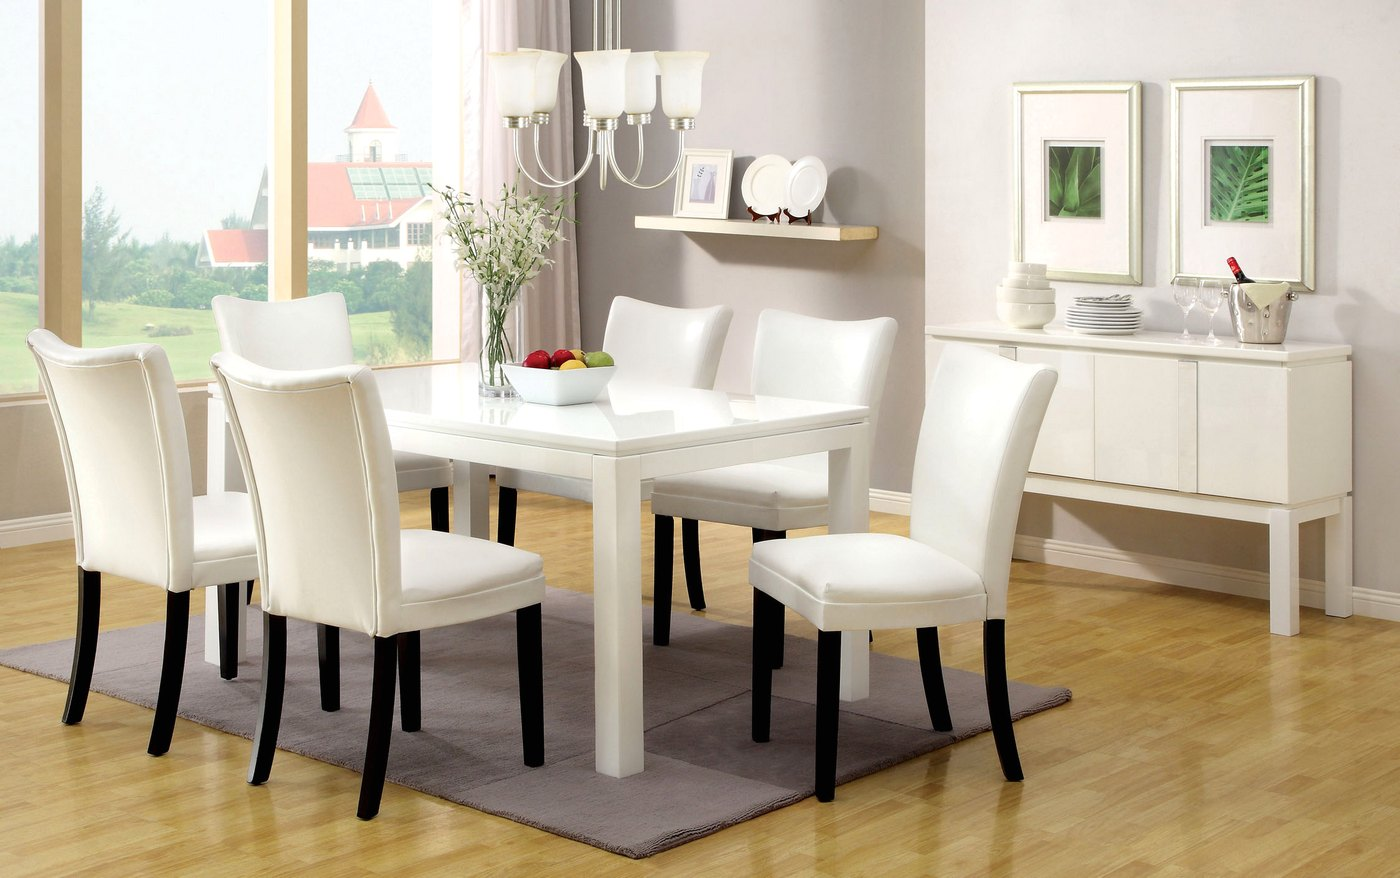 White Dining Table Set Lamia I Contemporary White Casual Dining Set With